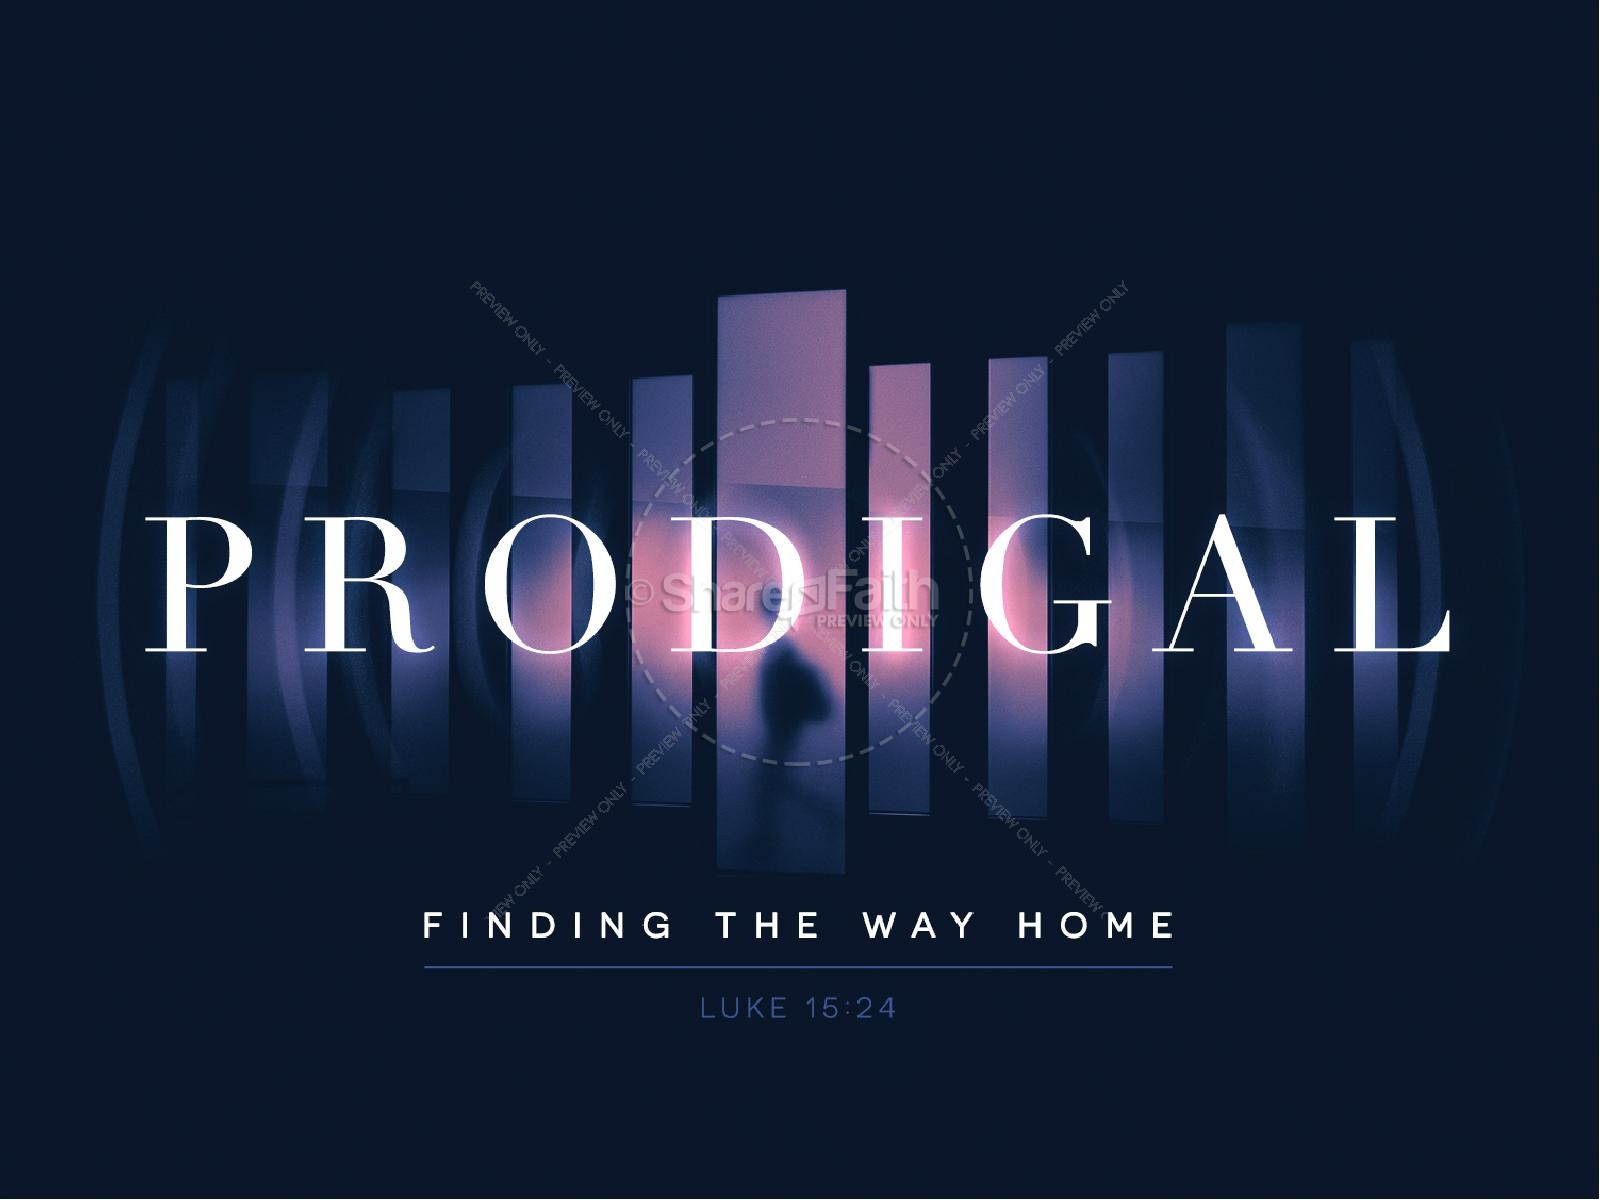 Prodigal Son Church PowerPoint